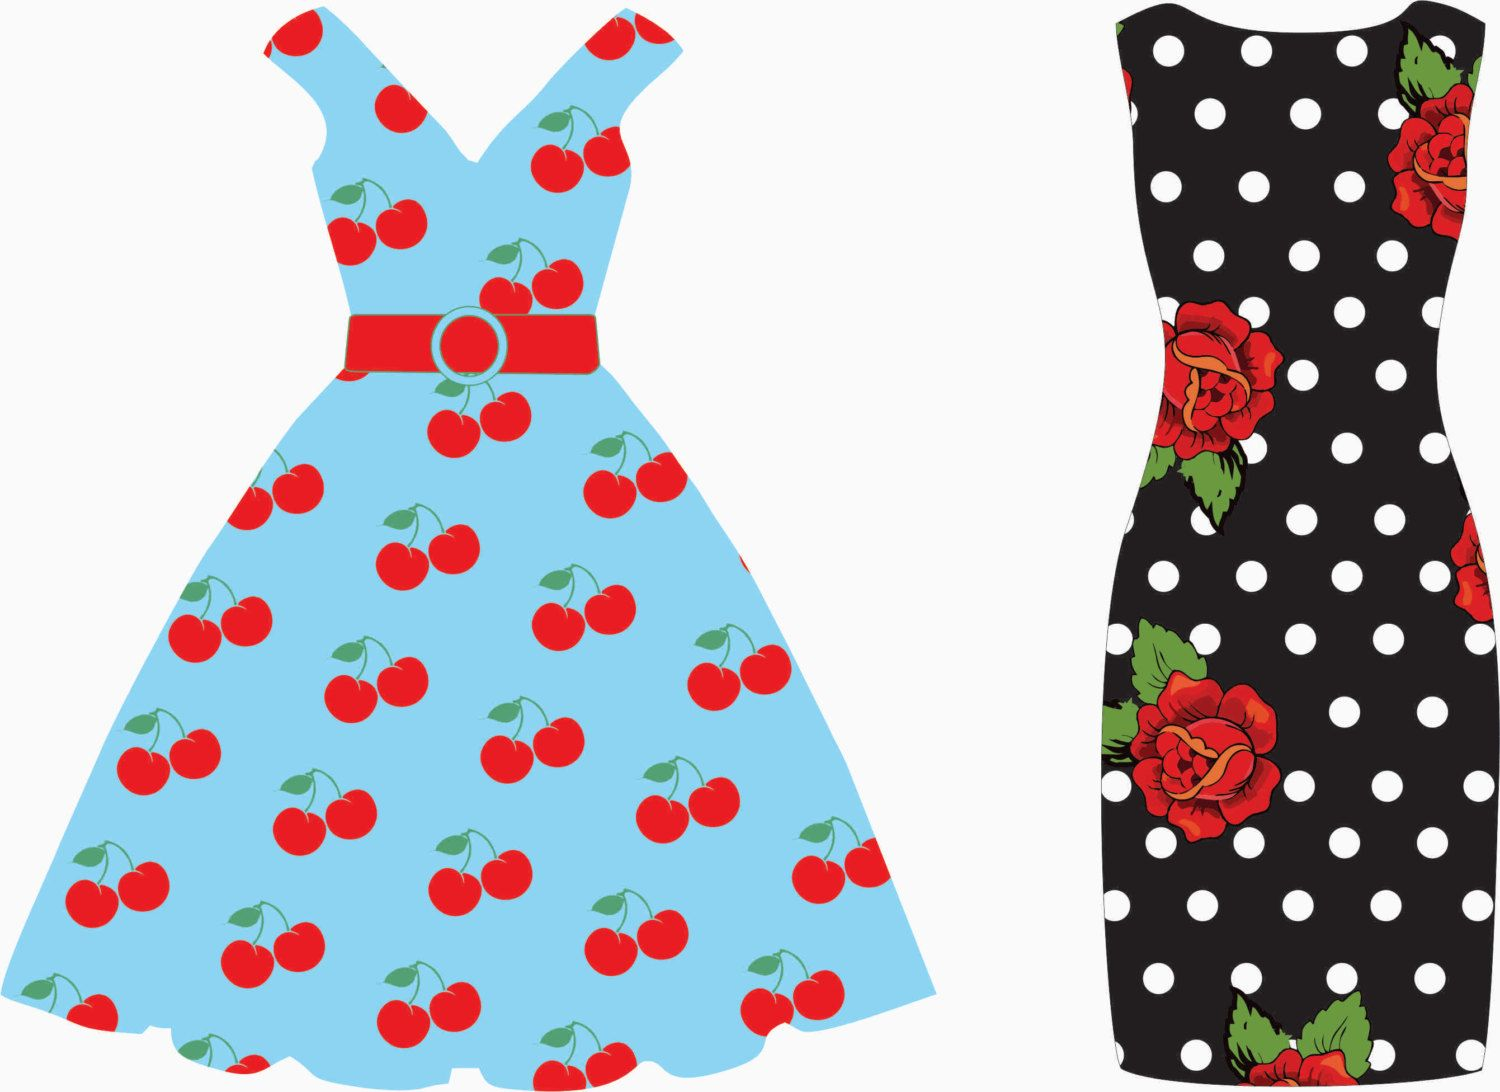 Tea party dress clipart tea party dresses tea party by.